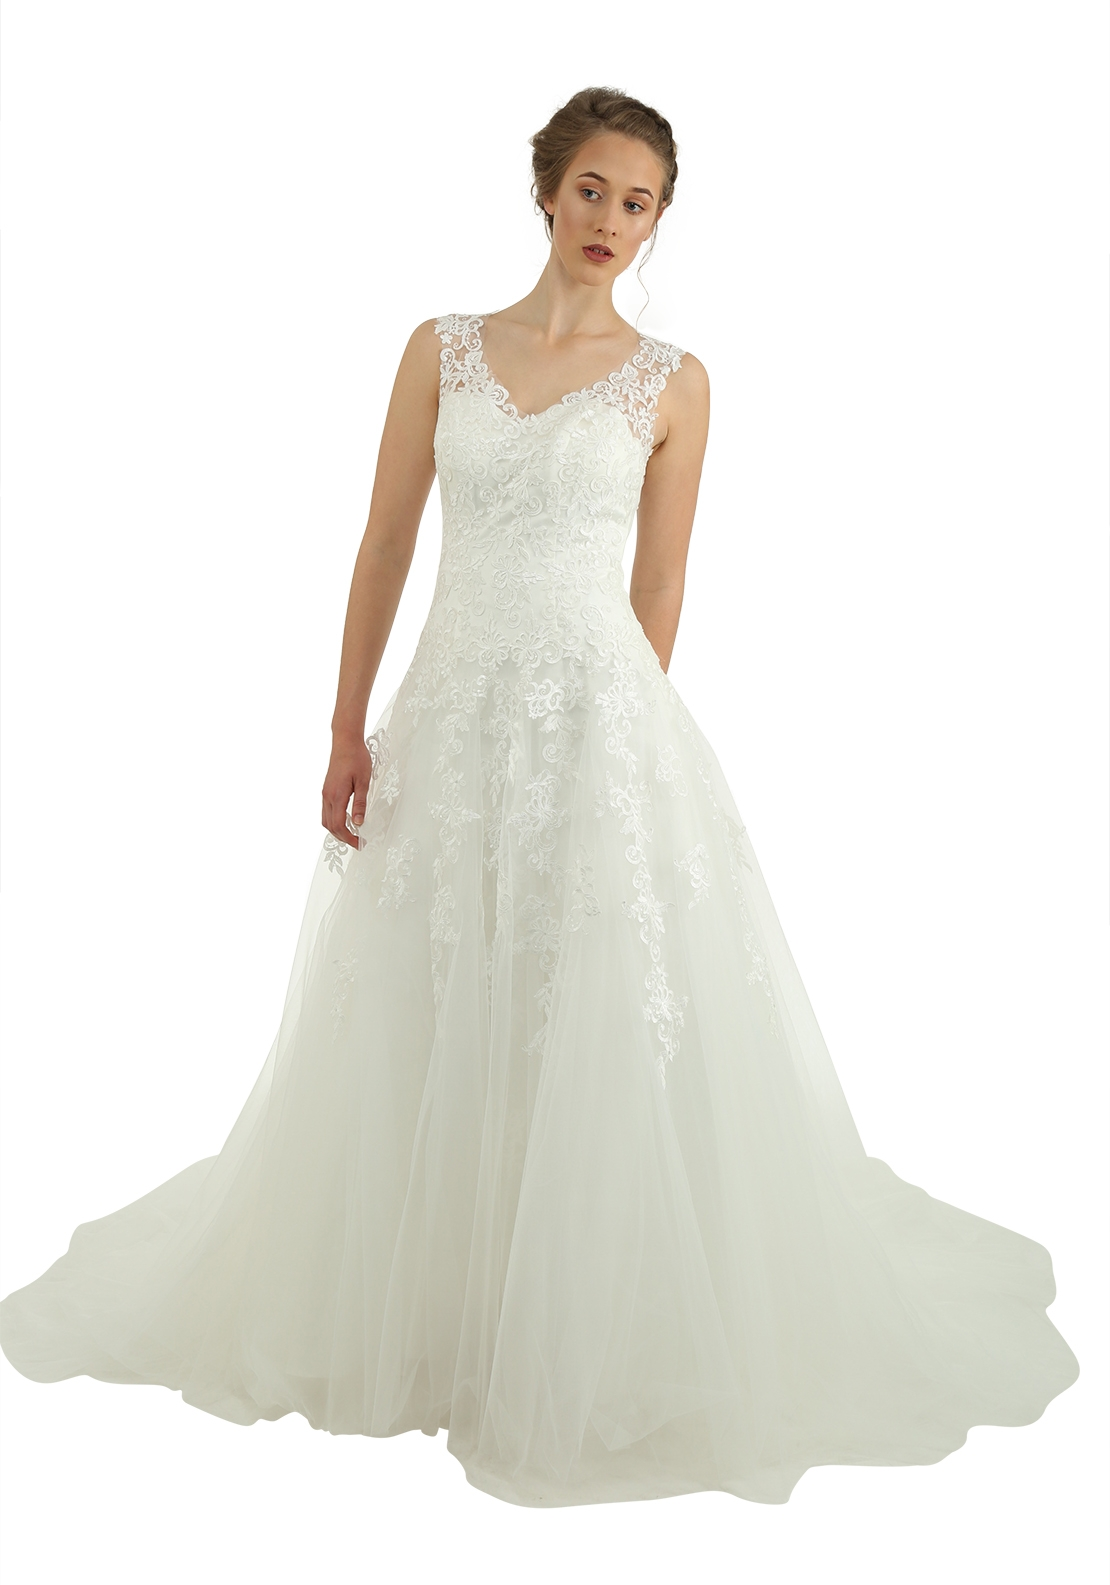 Victoria Kay Ella Collection E101 Wedding Dress, Ivory